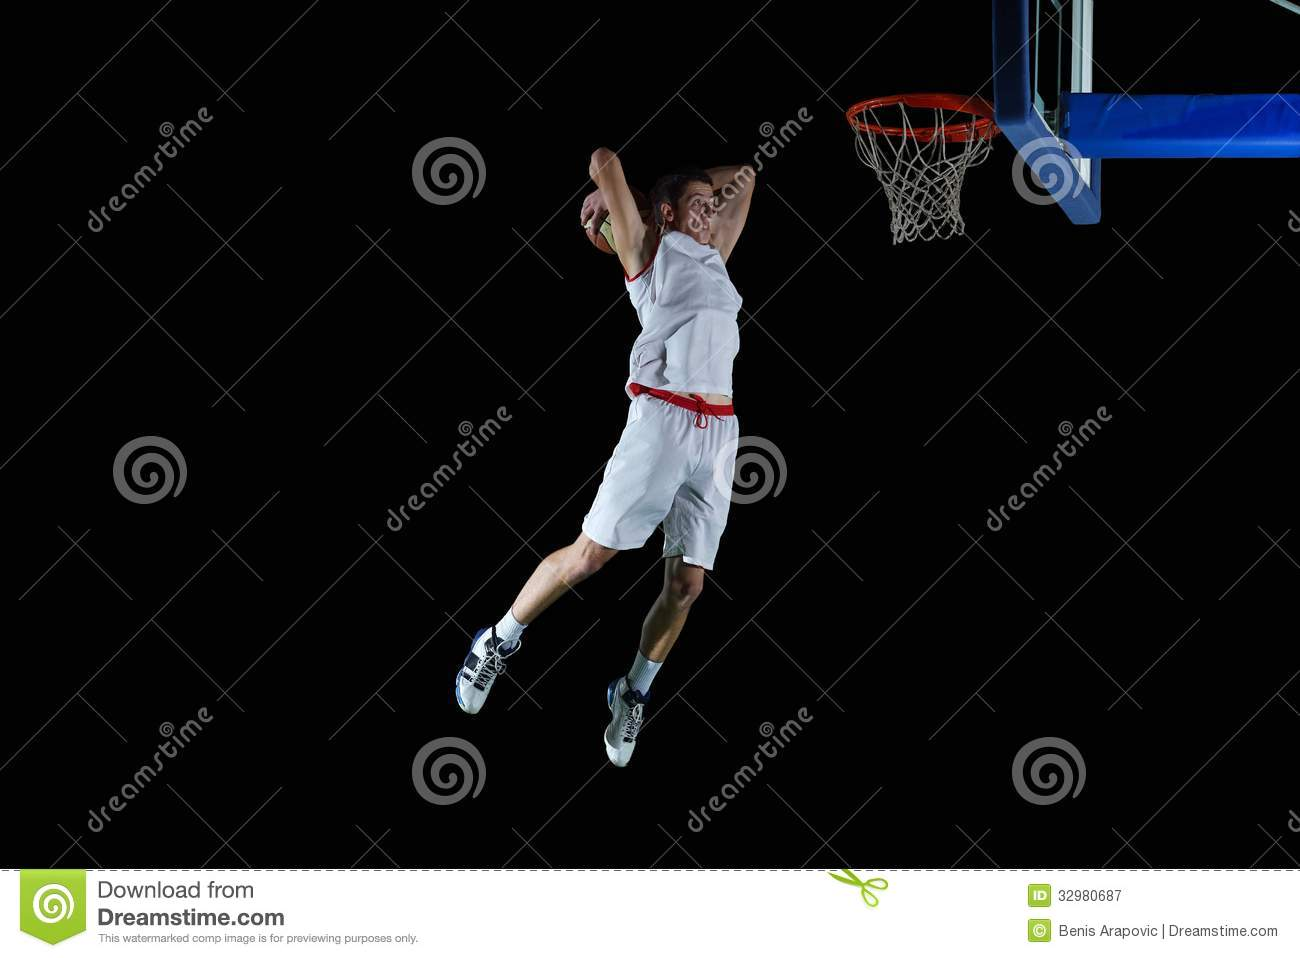 Basketball Player In Action Royalty Free Stock Photography - Image ...